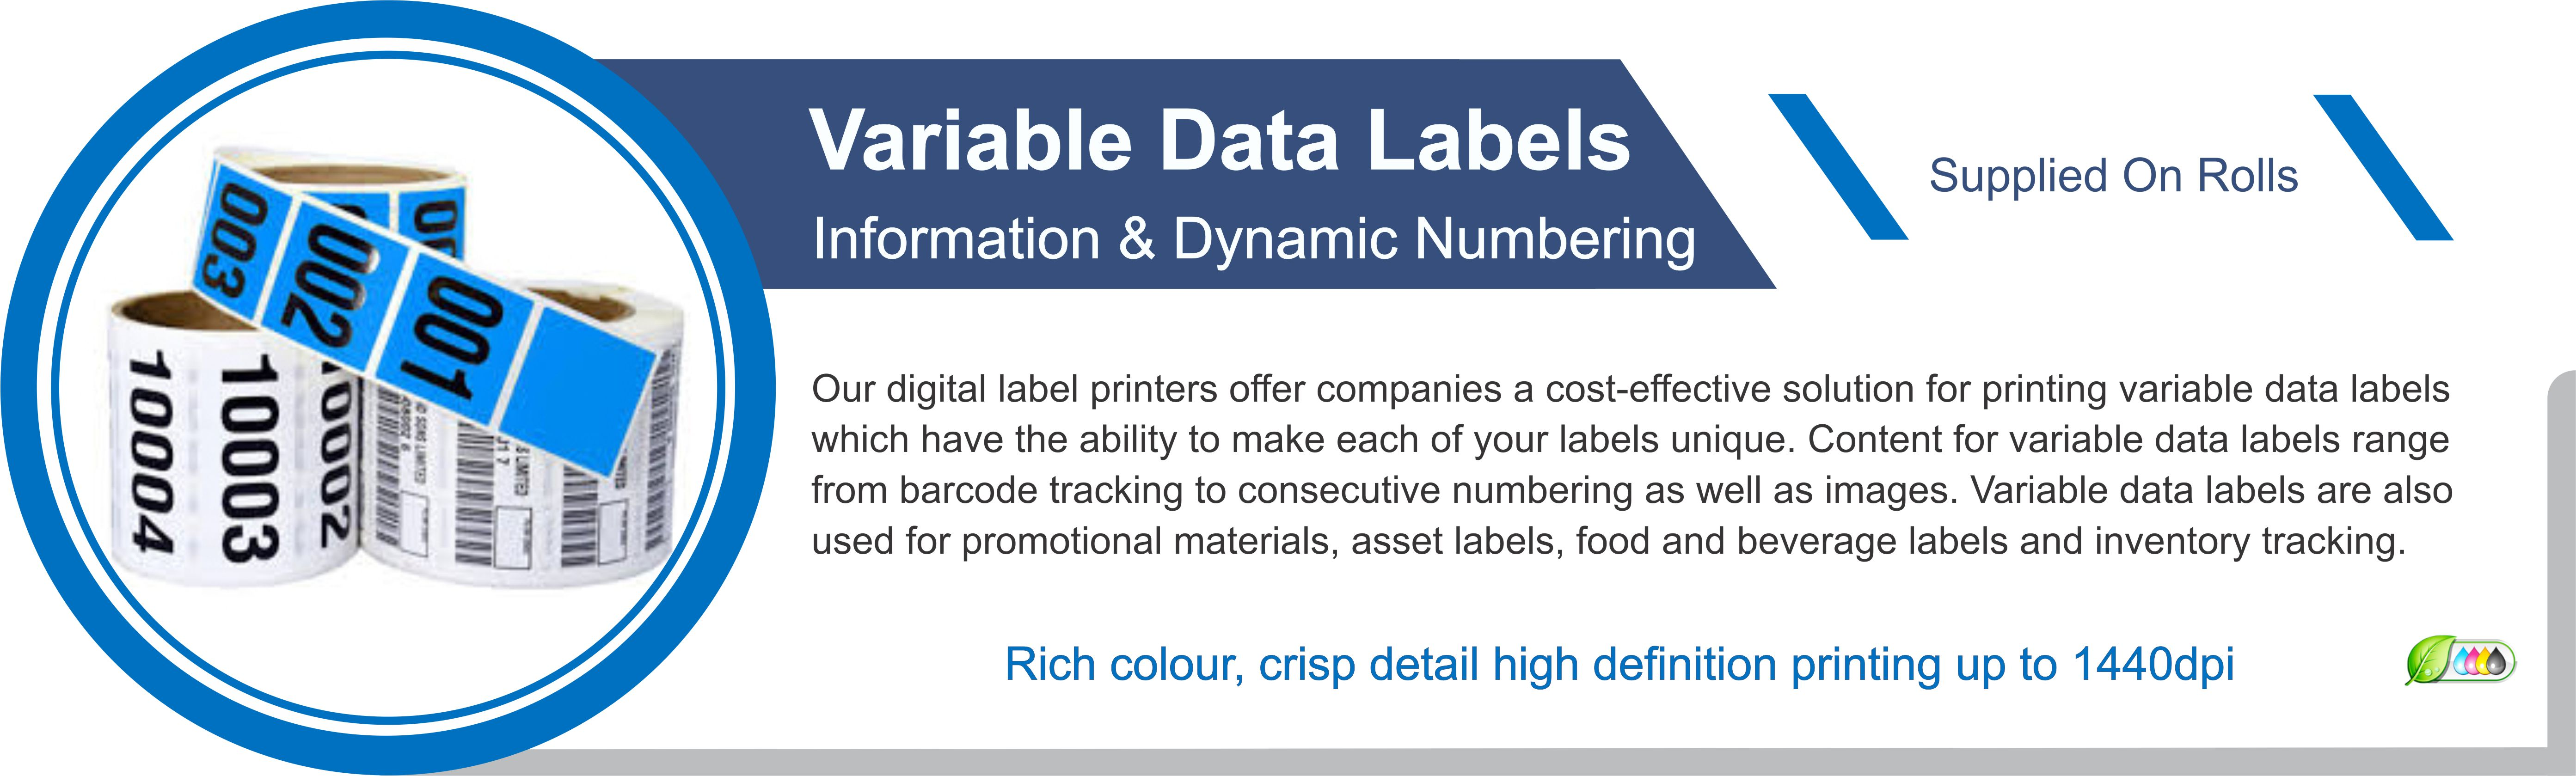 Variable Data Labels